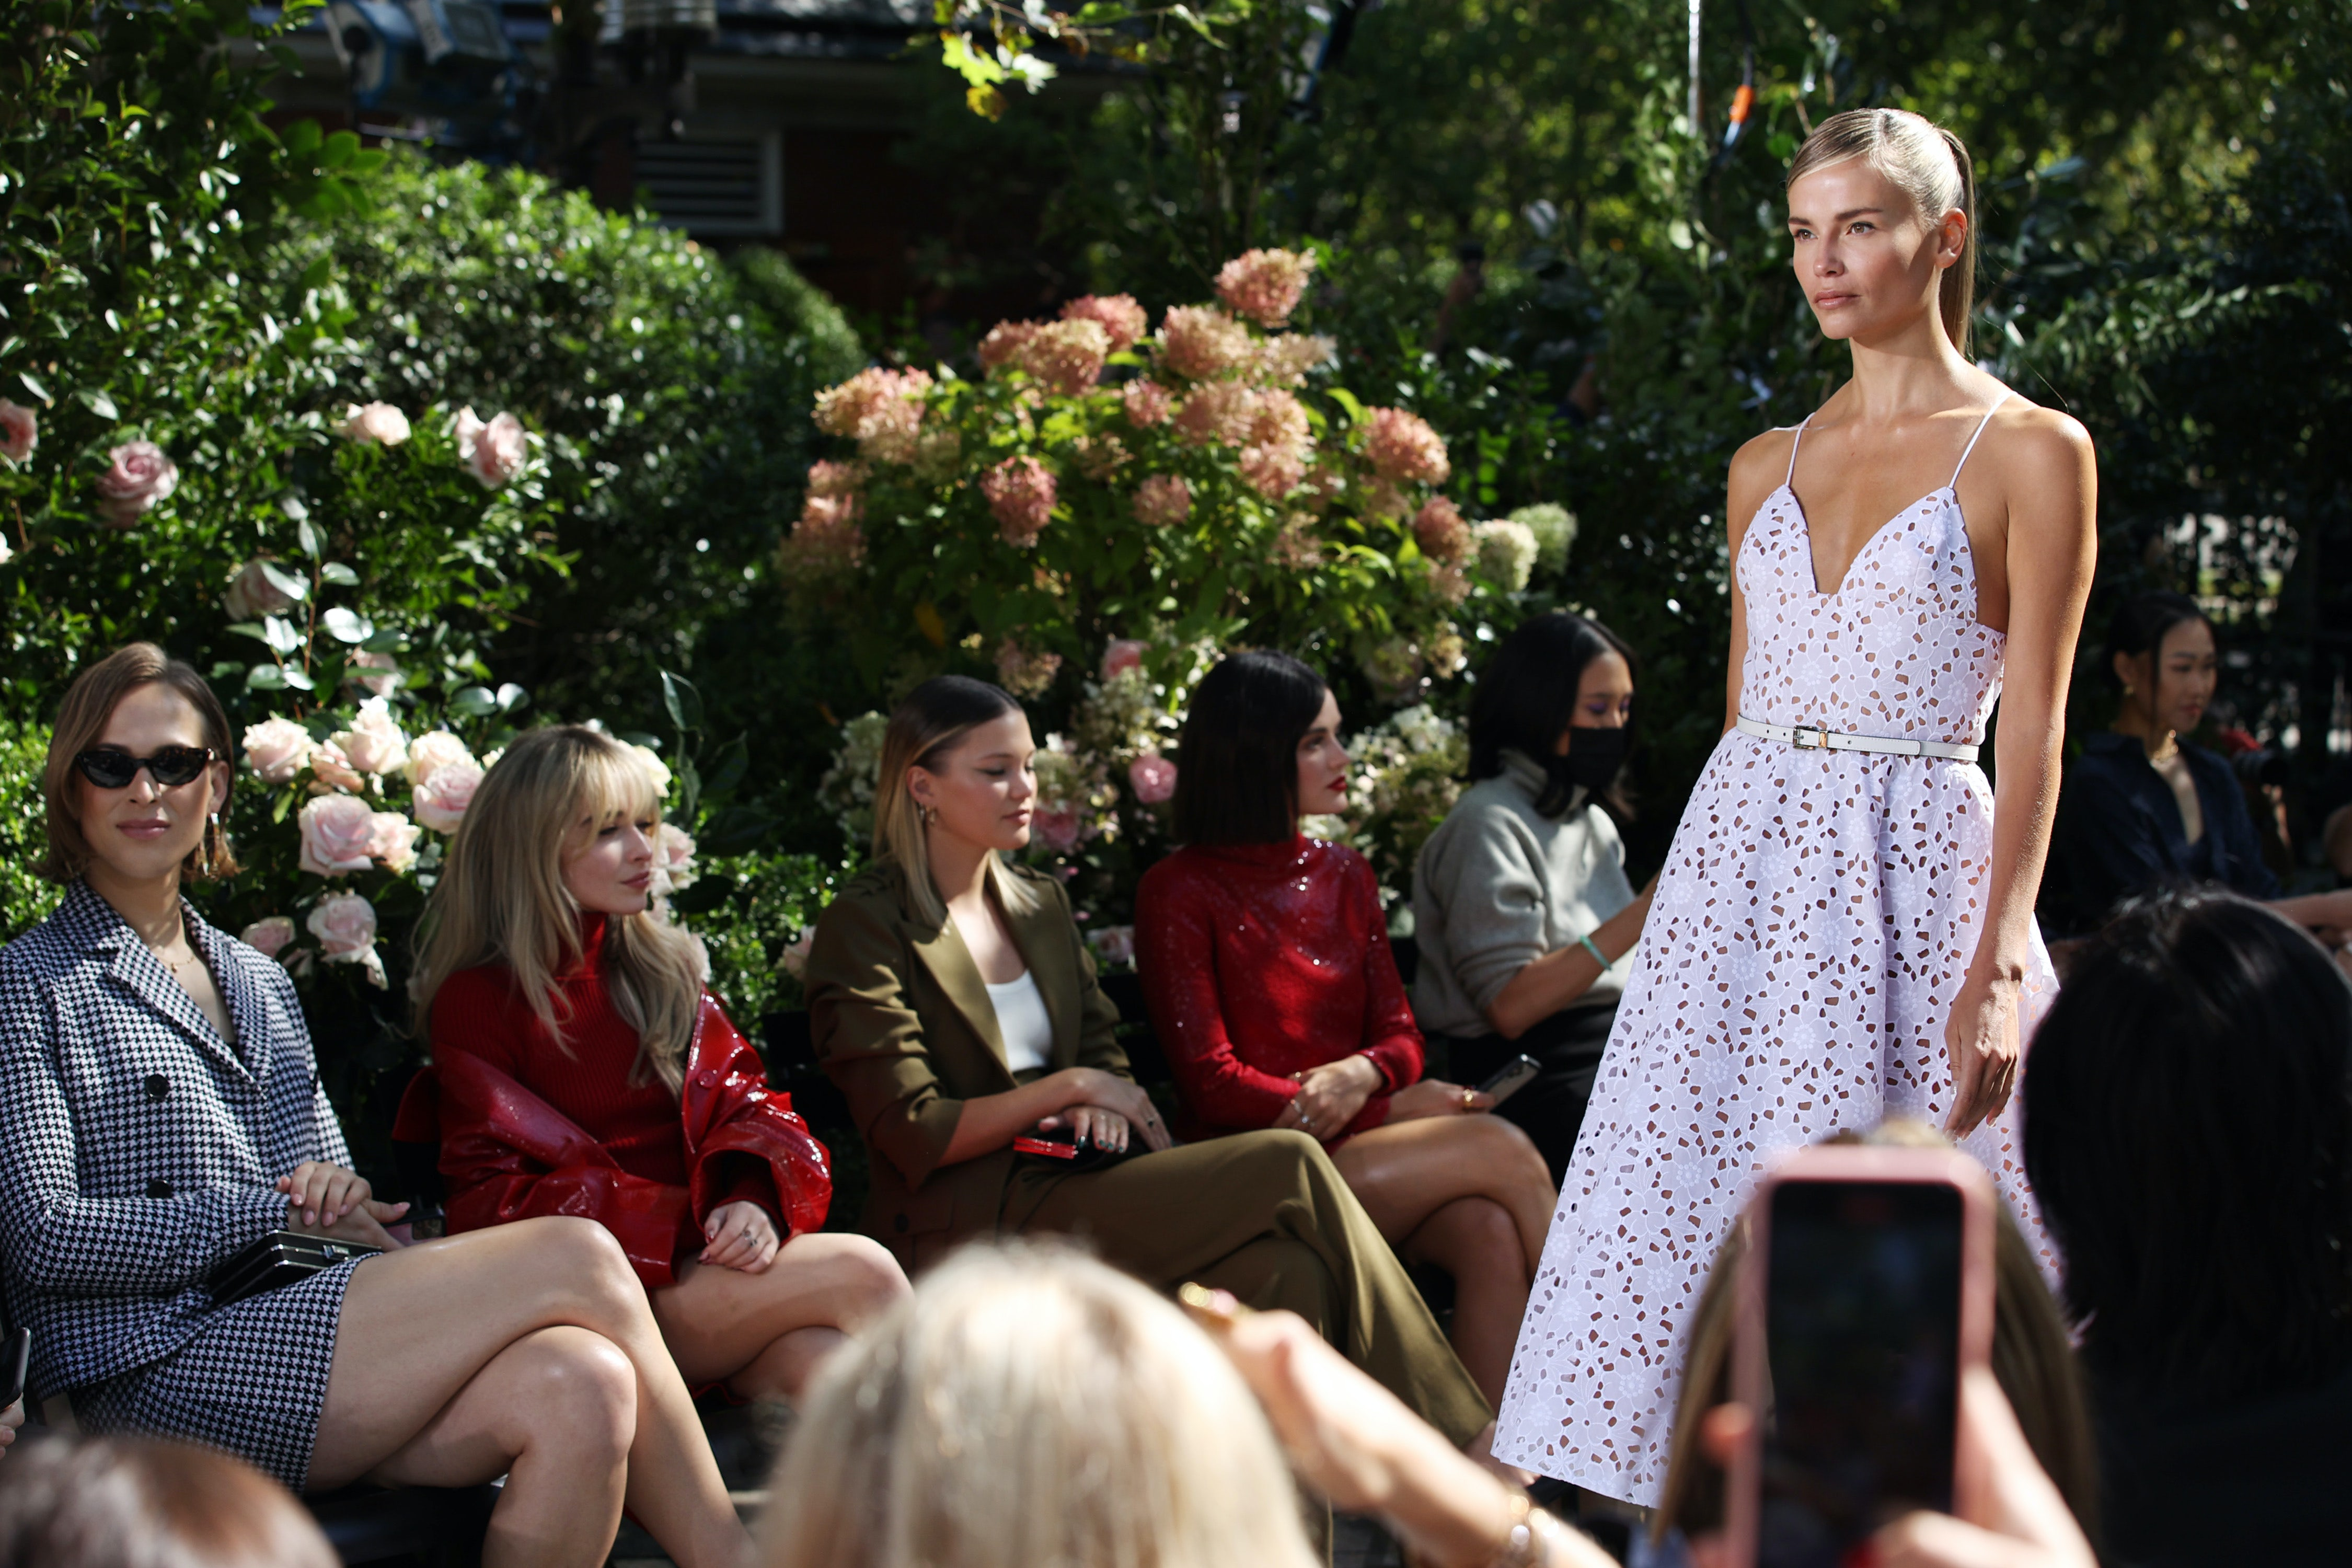 A model walks the runway for Michael Kors at New York Fashion Week. Dimitrios Kambouris/Getty Images for Michael Kors